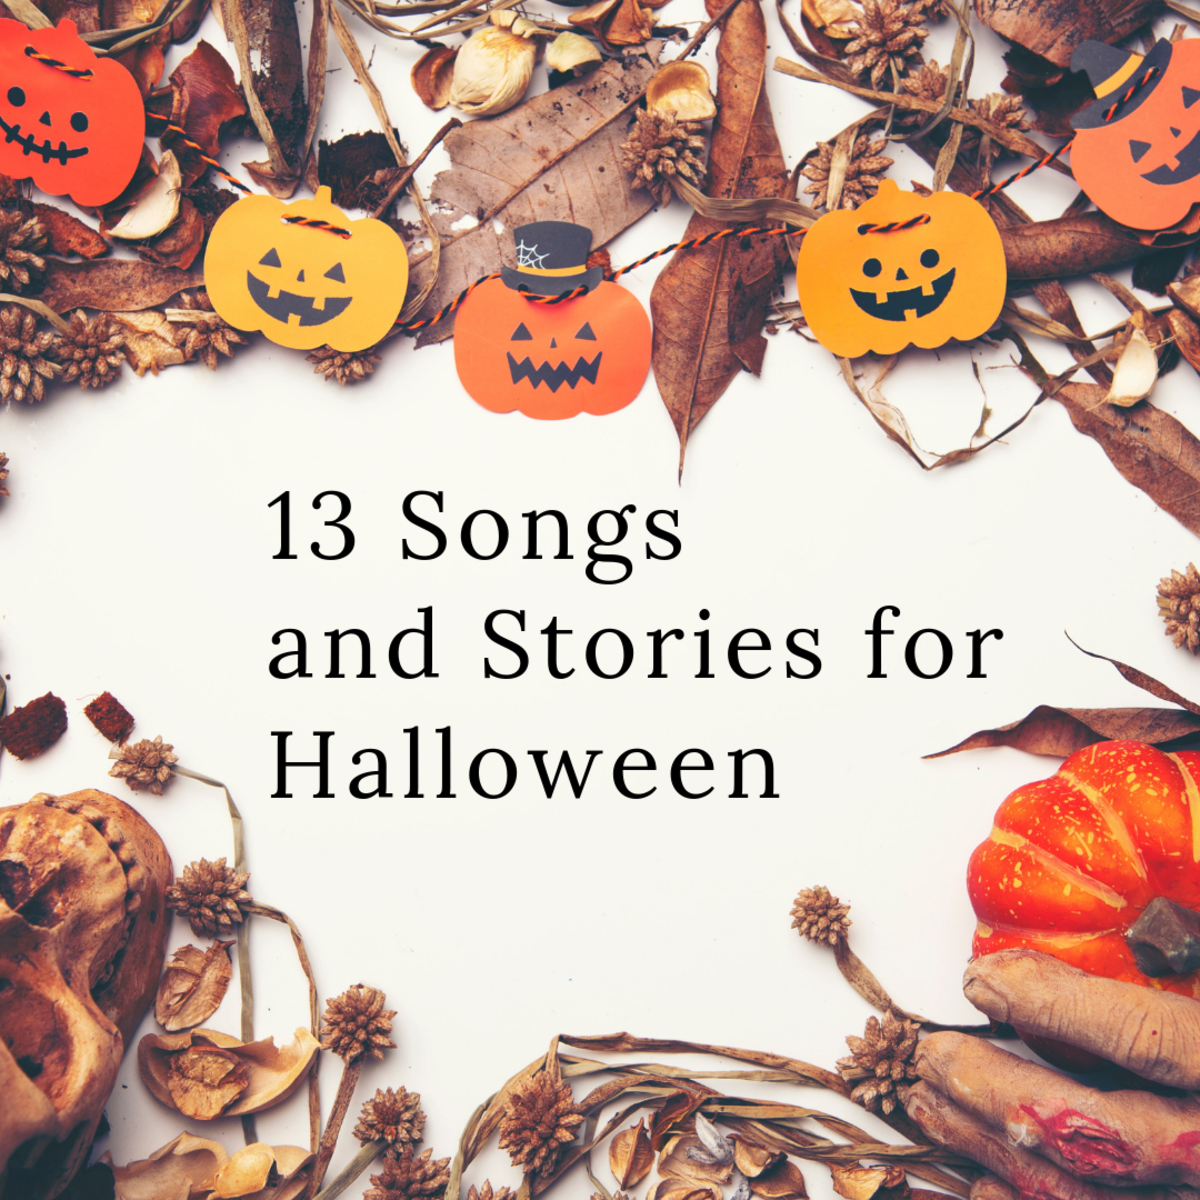 13 Songs and Stories for Halloween